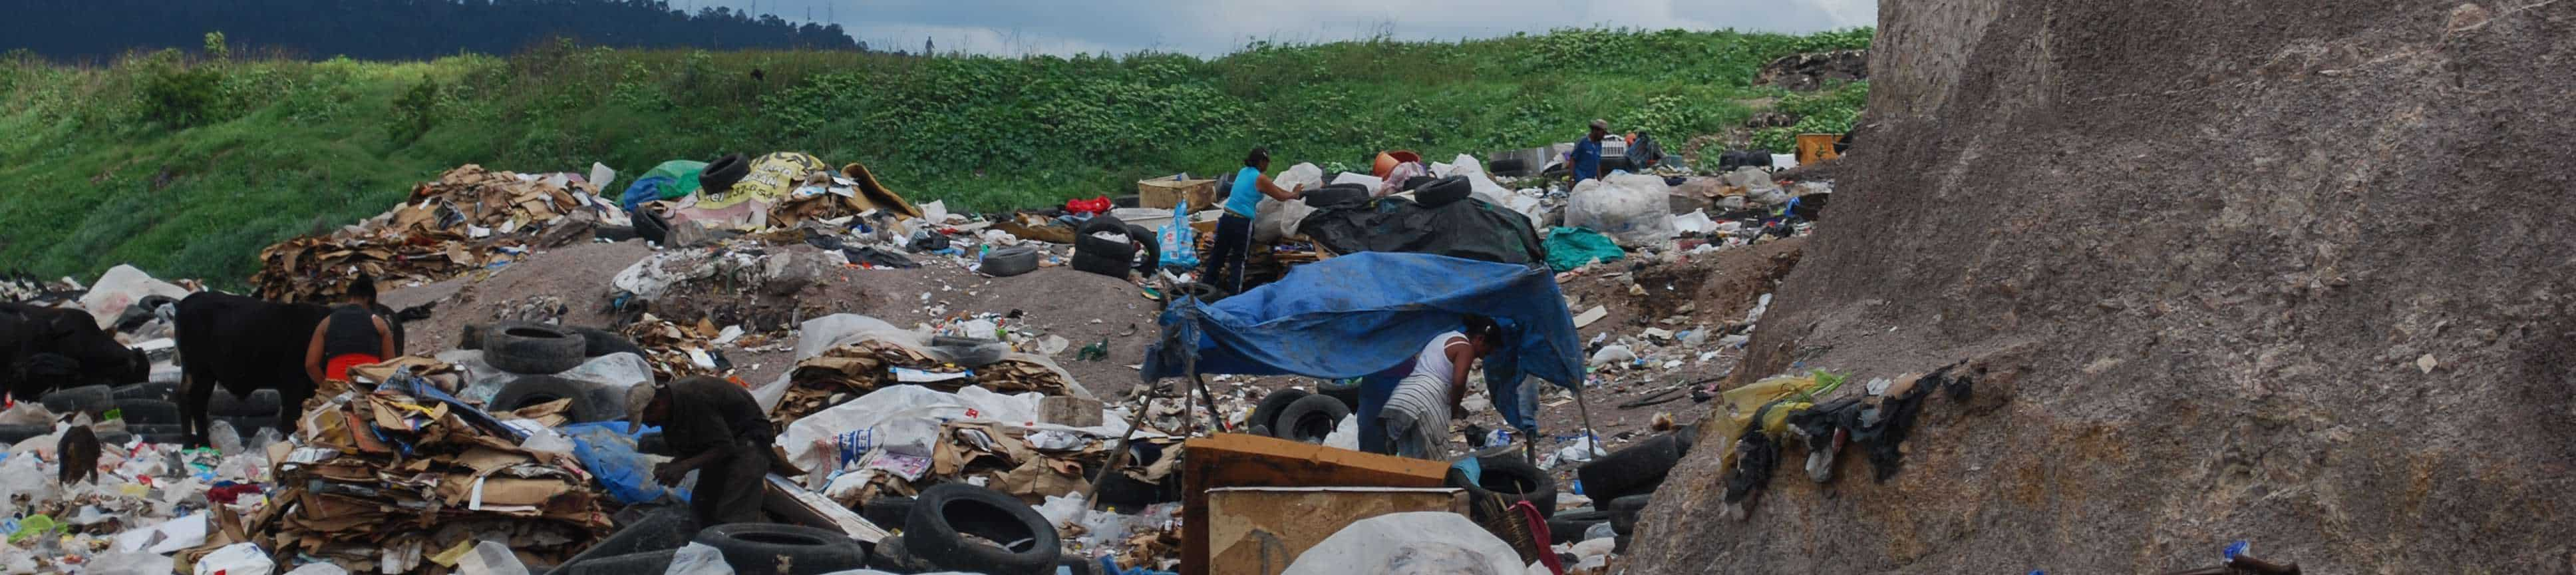 living in the dump